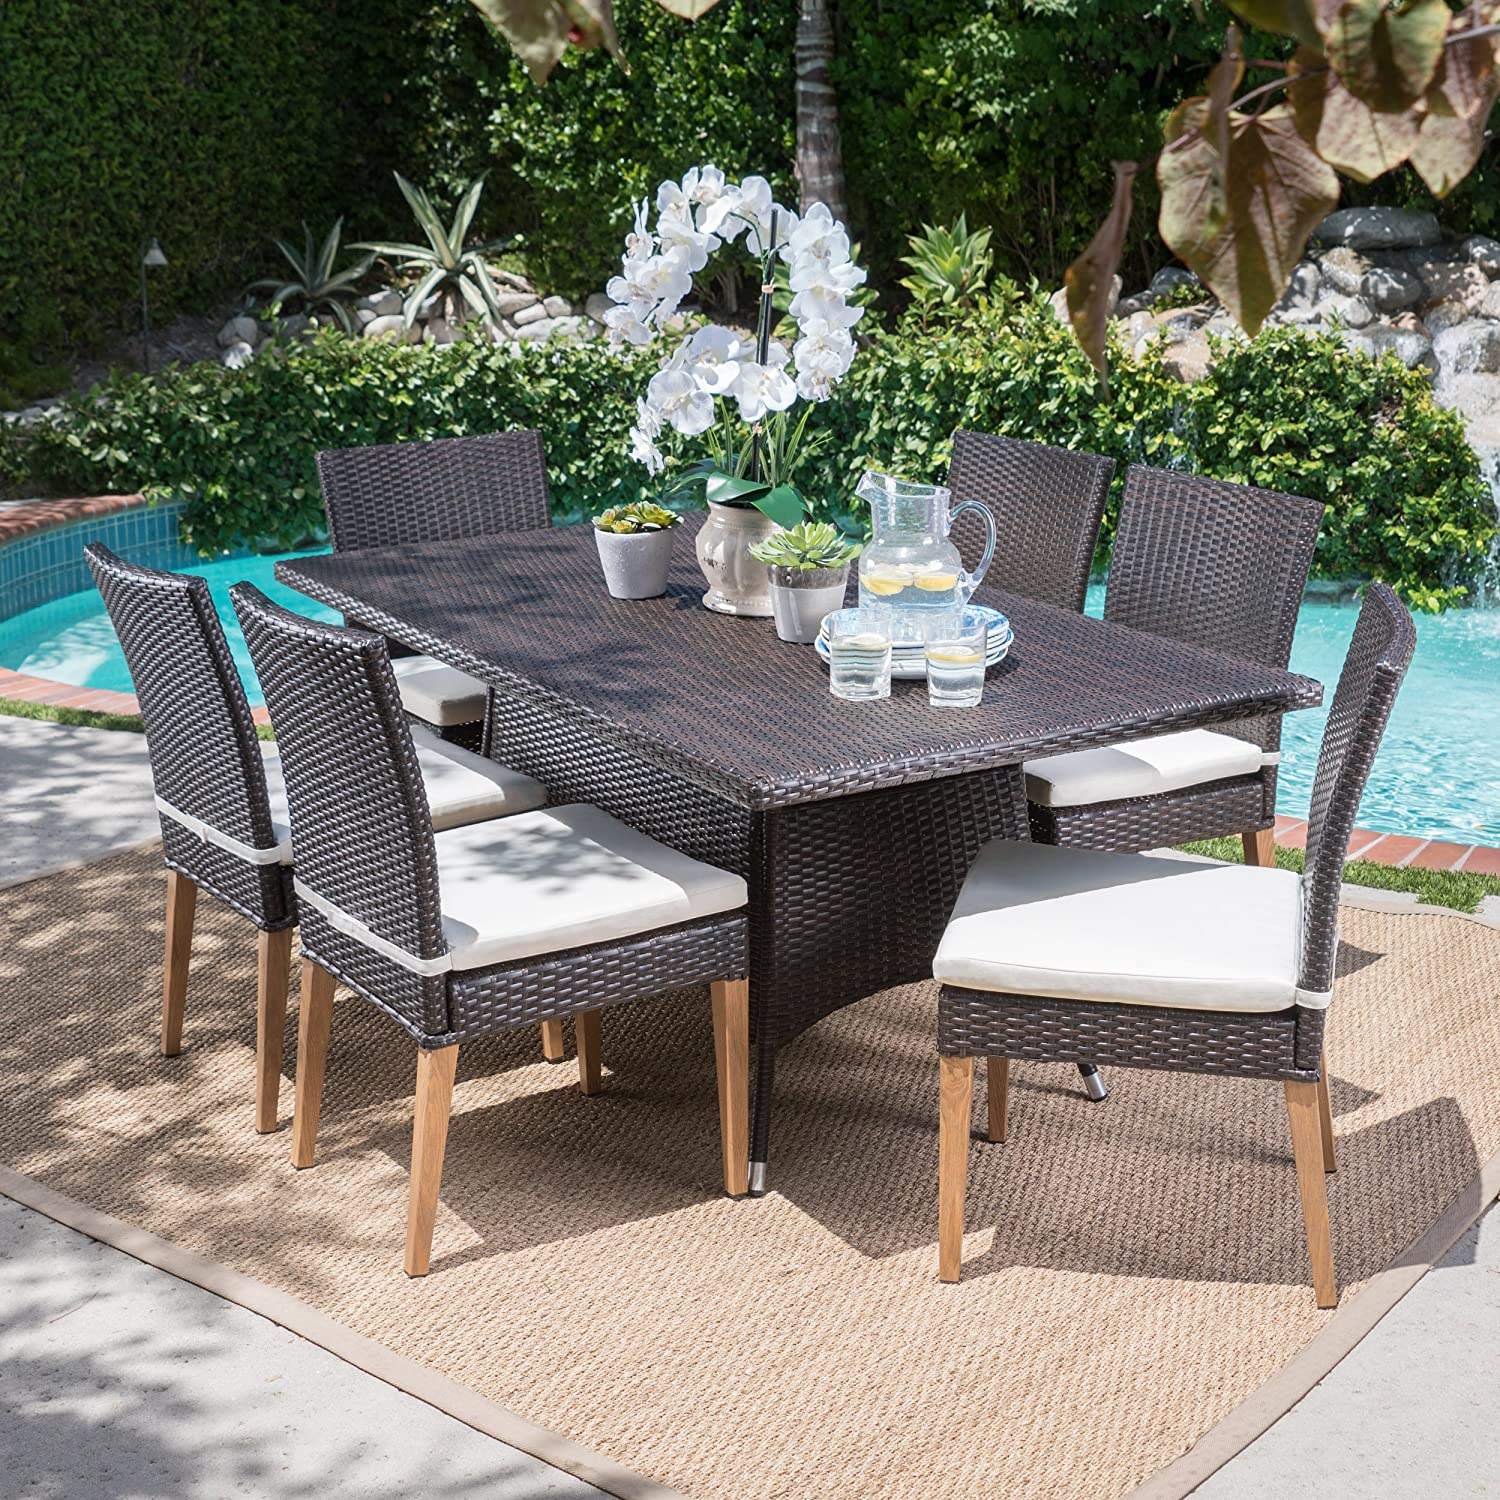 Christopher Knight Home Santa Monica Outdoor Rectangular 7 Piece Multibrown Wicker Dining Set with Beige Water Resistant Cushions